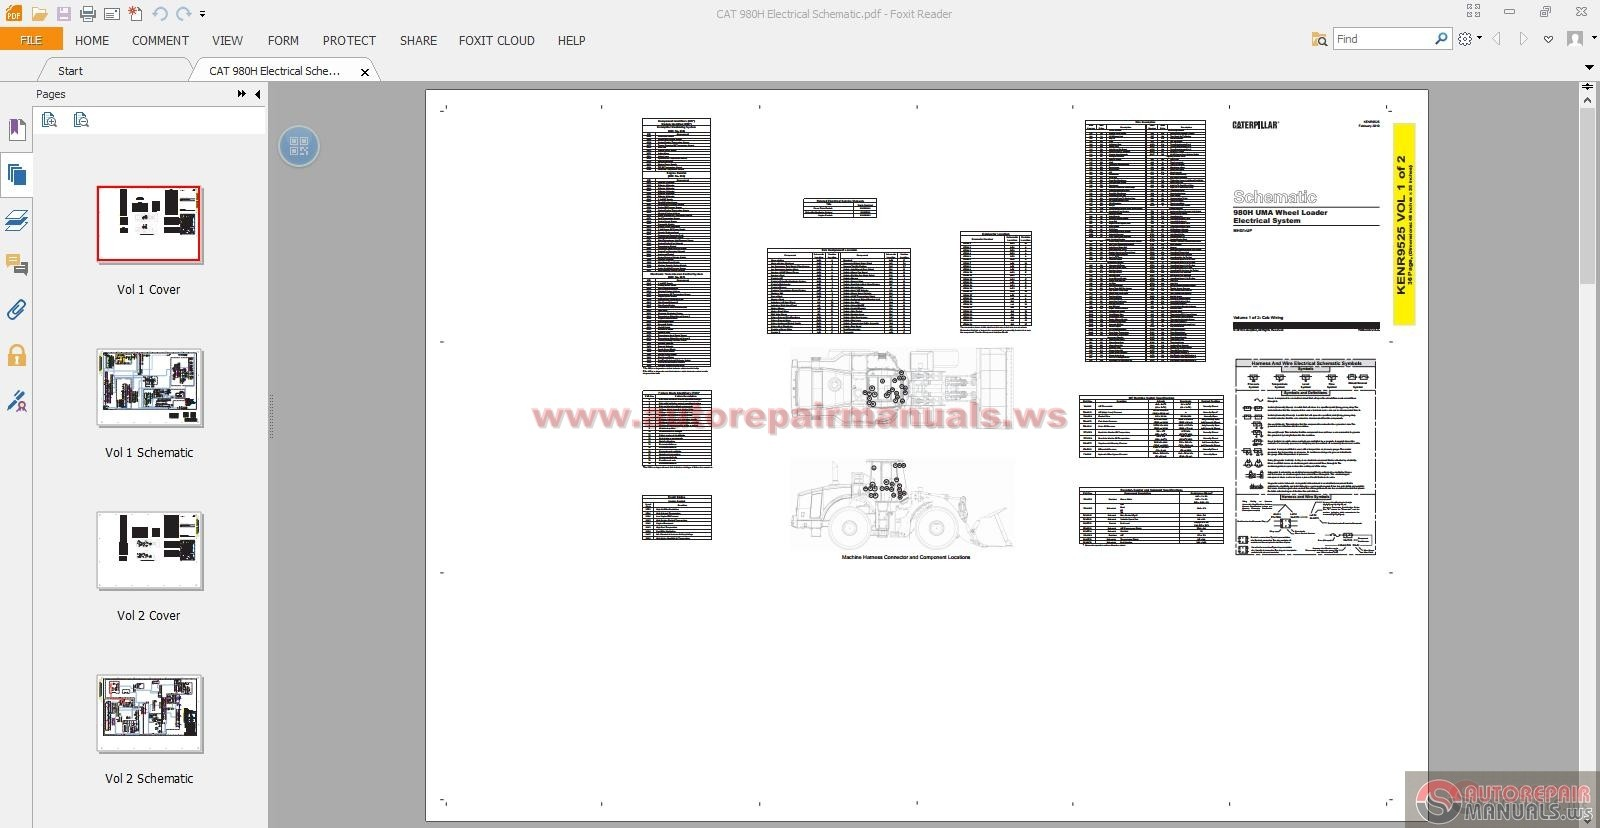 Keygen Autorepairmanuals Ws  Cat 980h Electrical Schematic